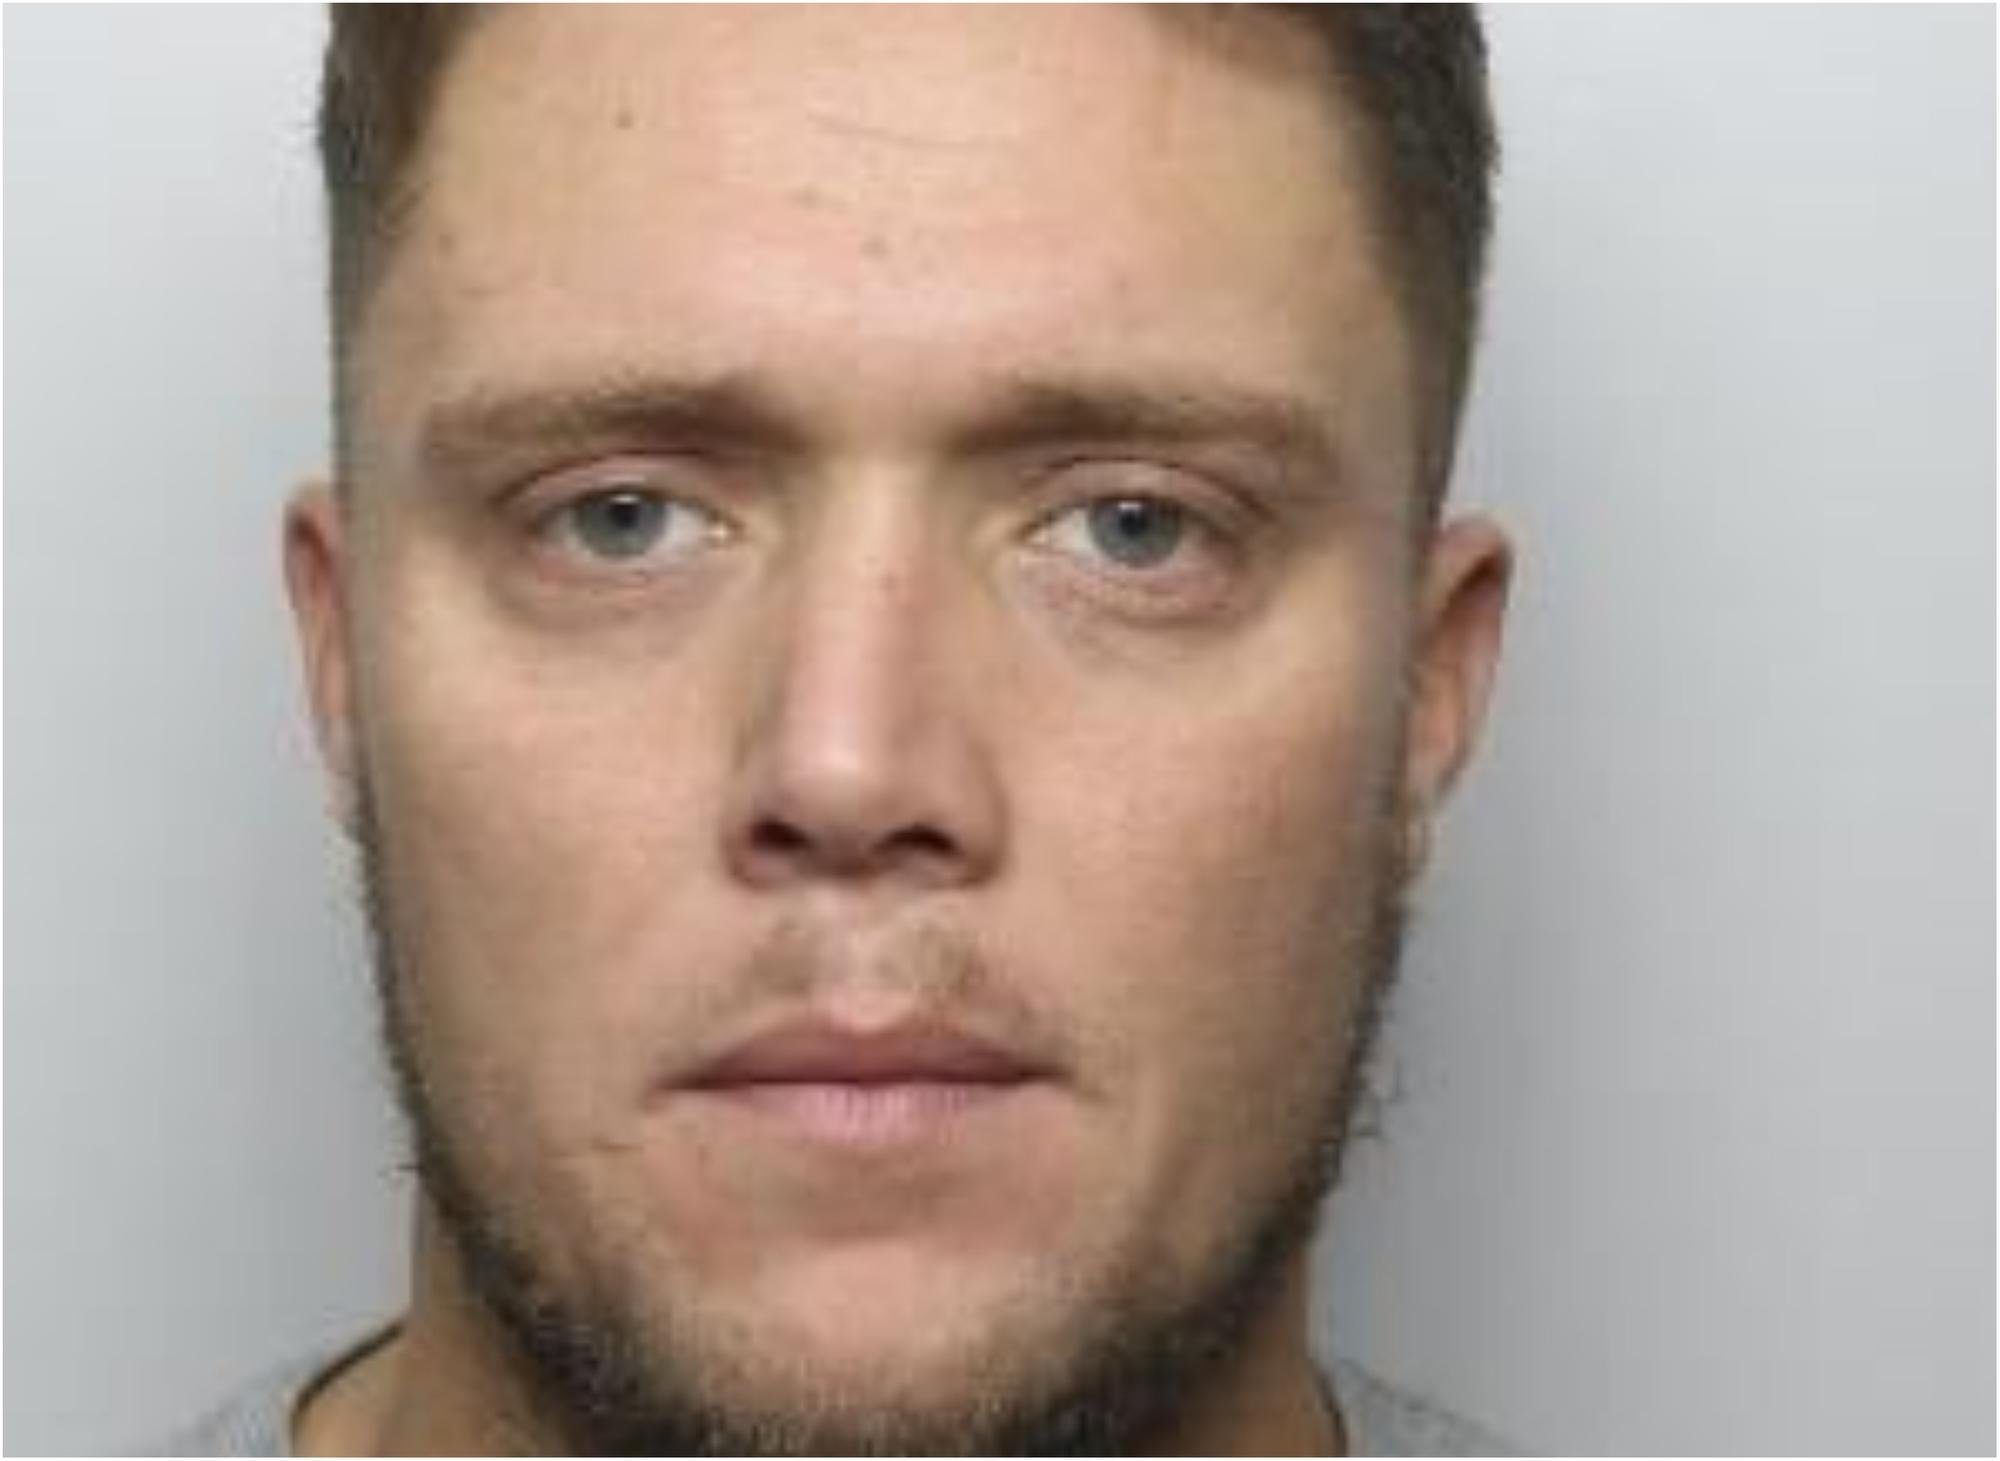 Notorious Scarborough thug jailed yet again for horrific